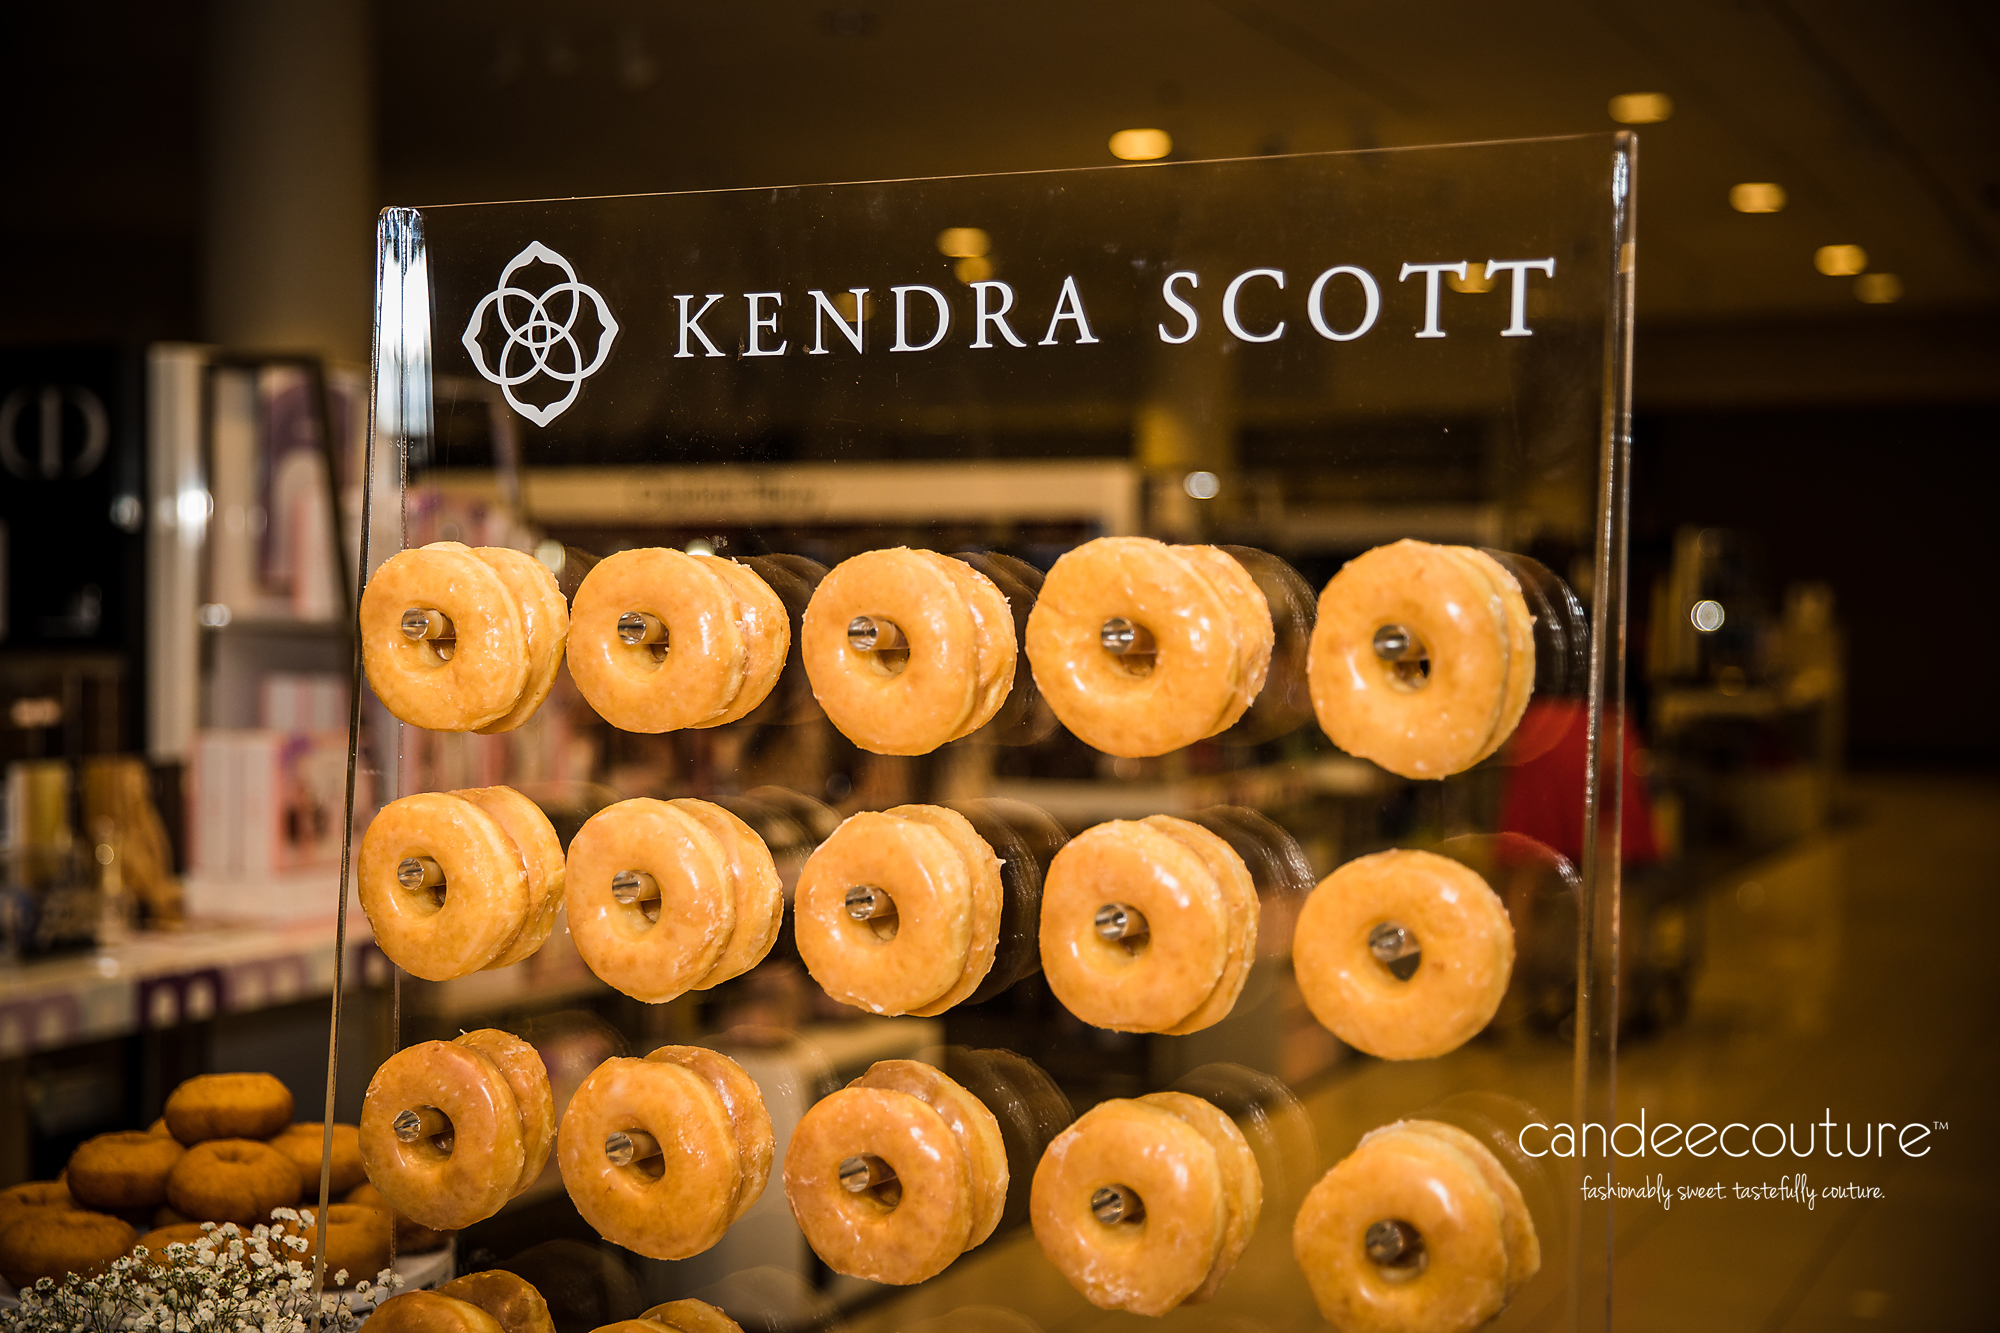 Kendra Scott Donut Wall, Kendra Scott, Donut Wall, Nordstrom, NorthPark Center, NorthPark, Donuts, Dont Bar, Sweet table